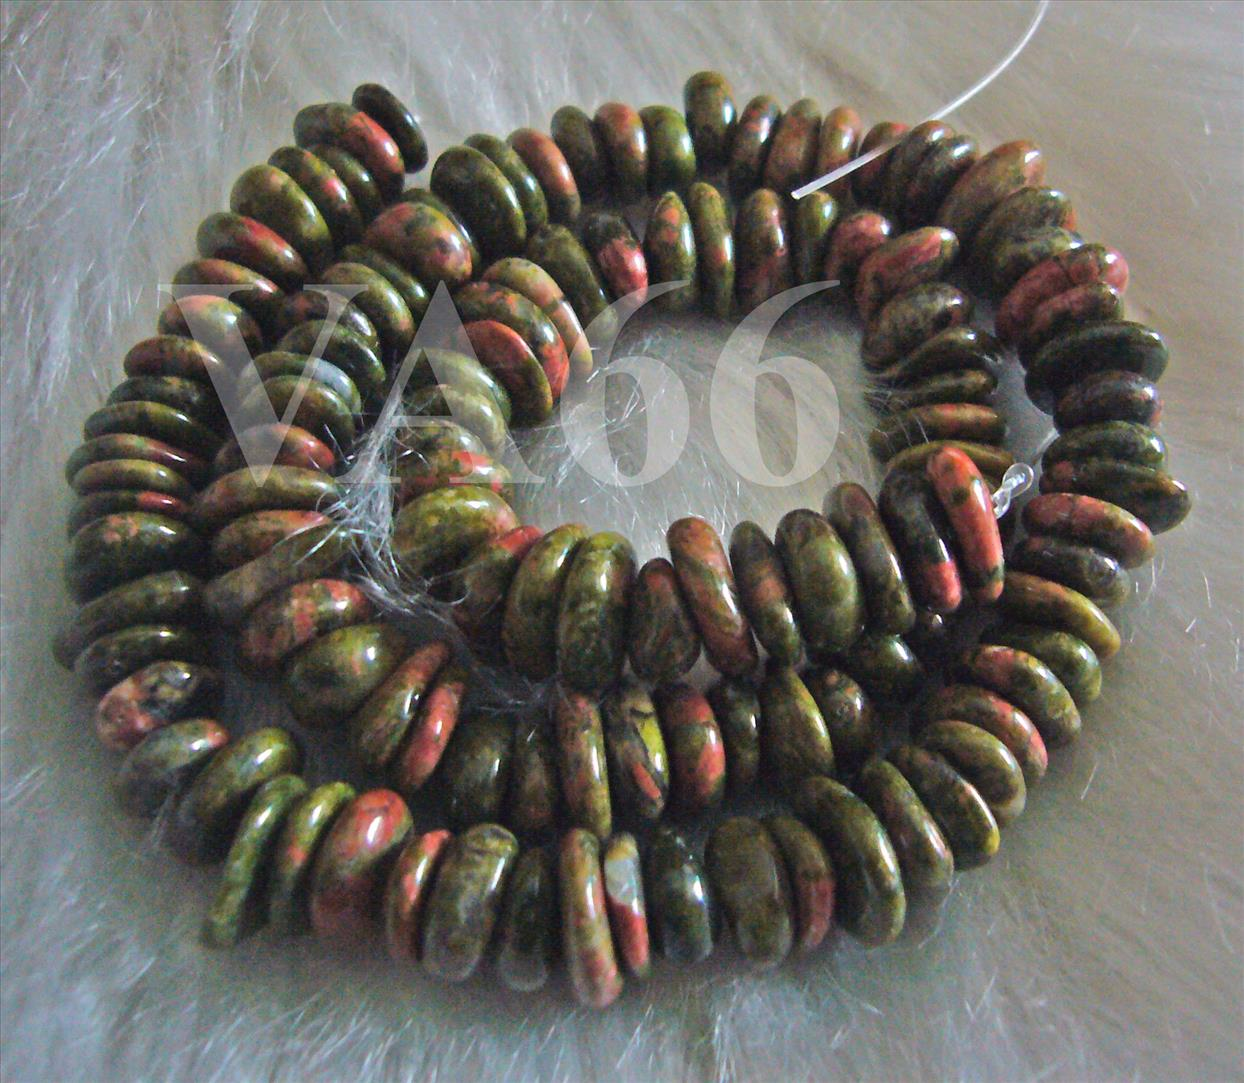 unakite cm shop online stone chips on manufacture gemstone natural thread item